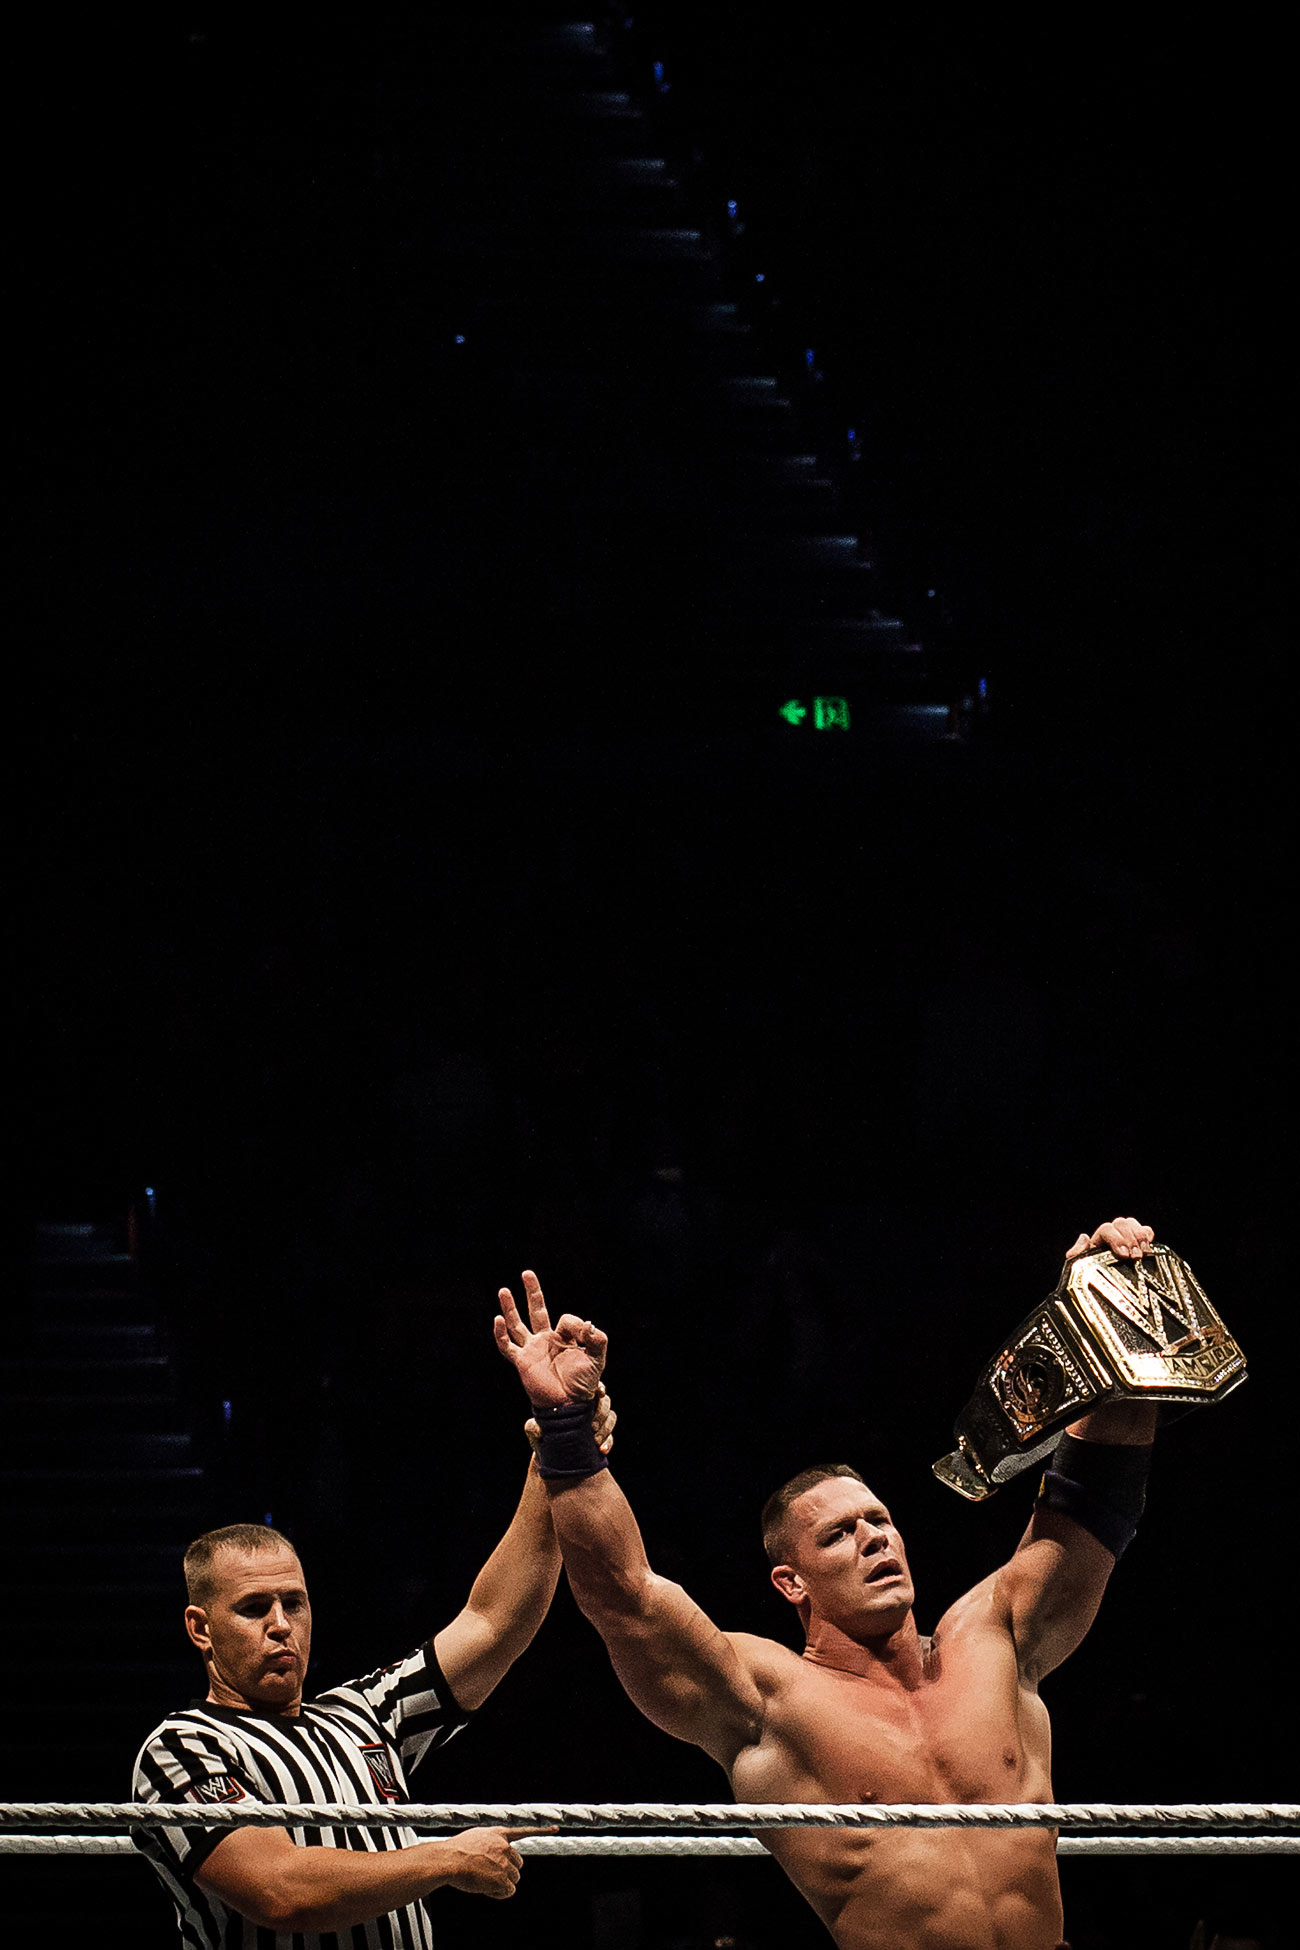 Professional wrestler and WWE Champion John Cena